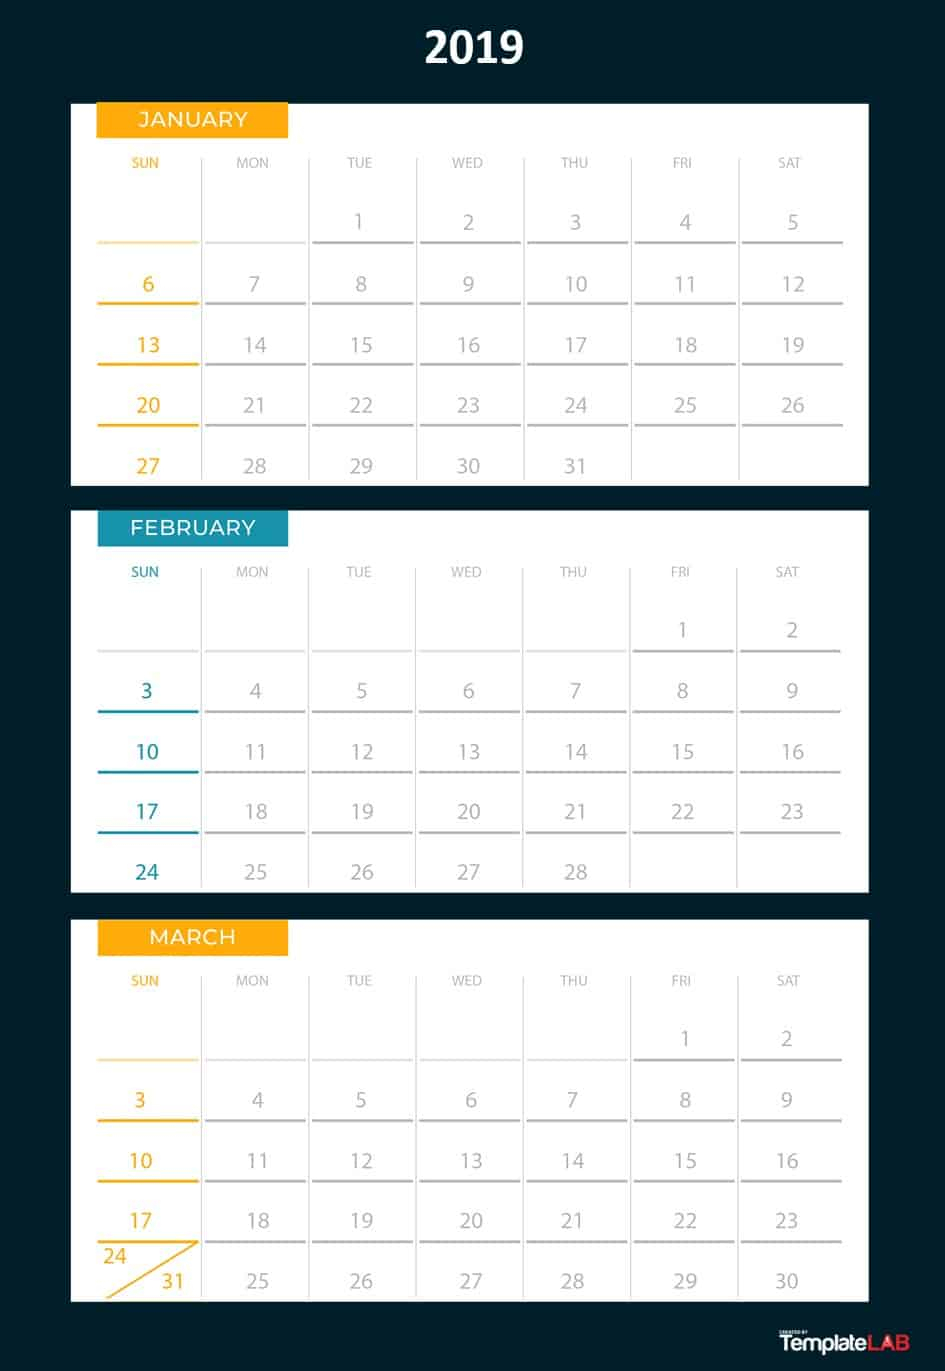 2019 Printable Calendars [Monthly, With Holidays, Yearly] ᐅ with regard to Calendar Template With 194 Days